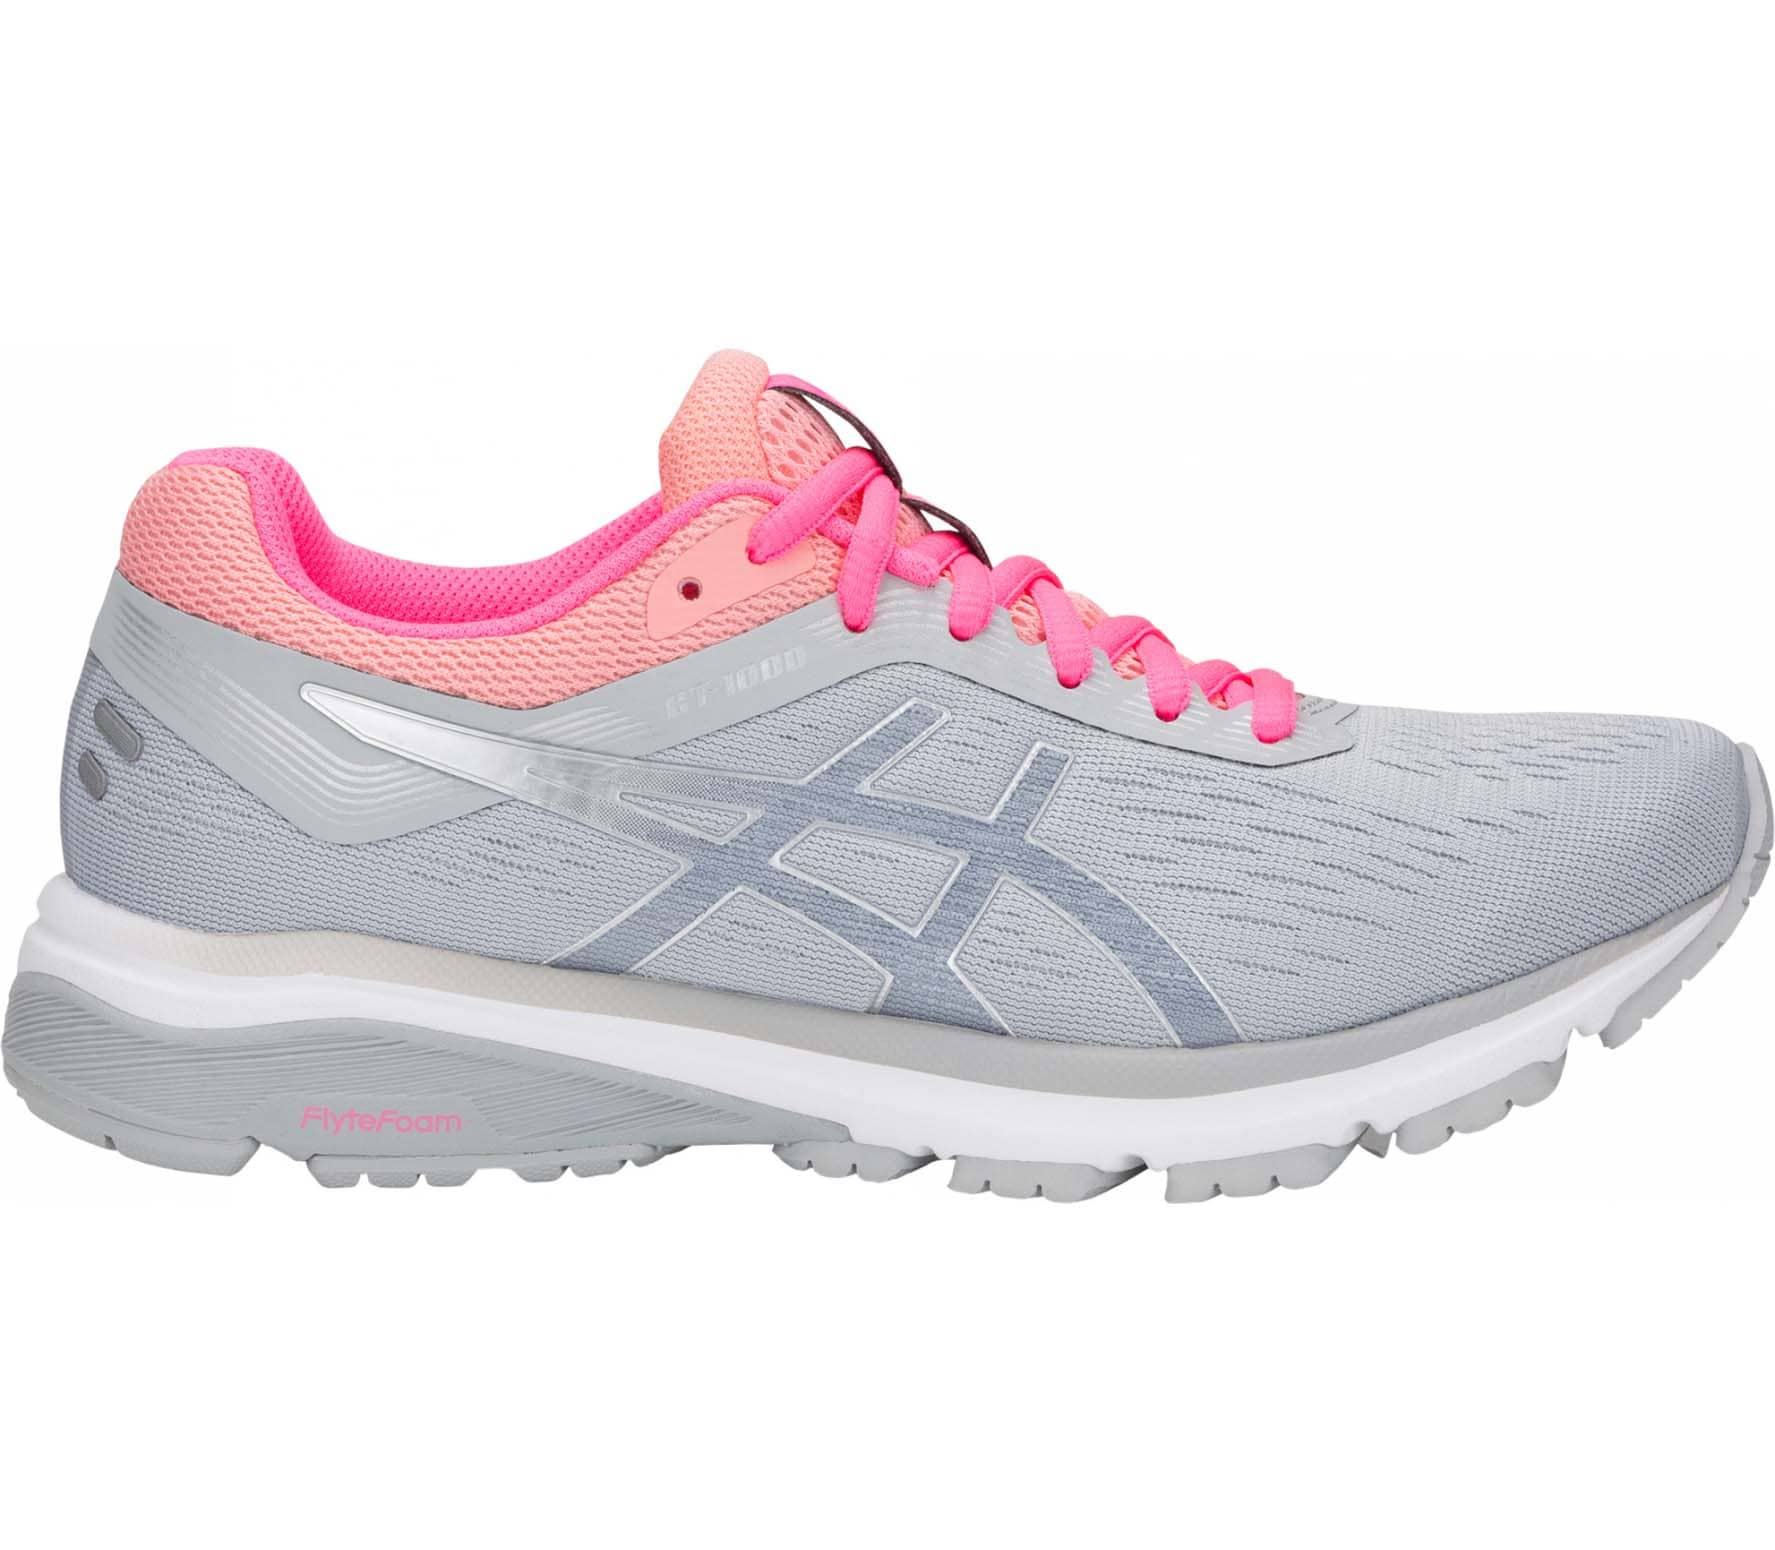 df26329a0e1f ASICS - GT-1000 7 women s running shoes (grey silver) - buy it at ...